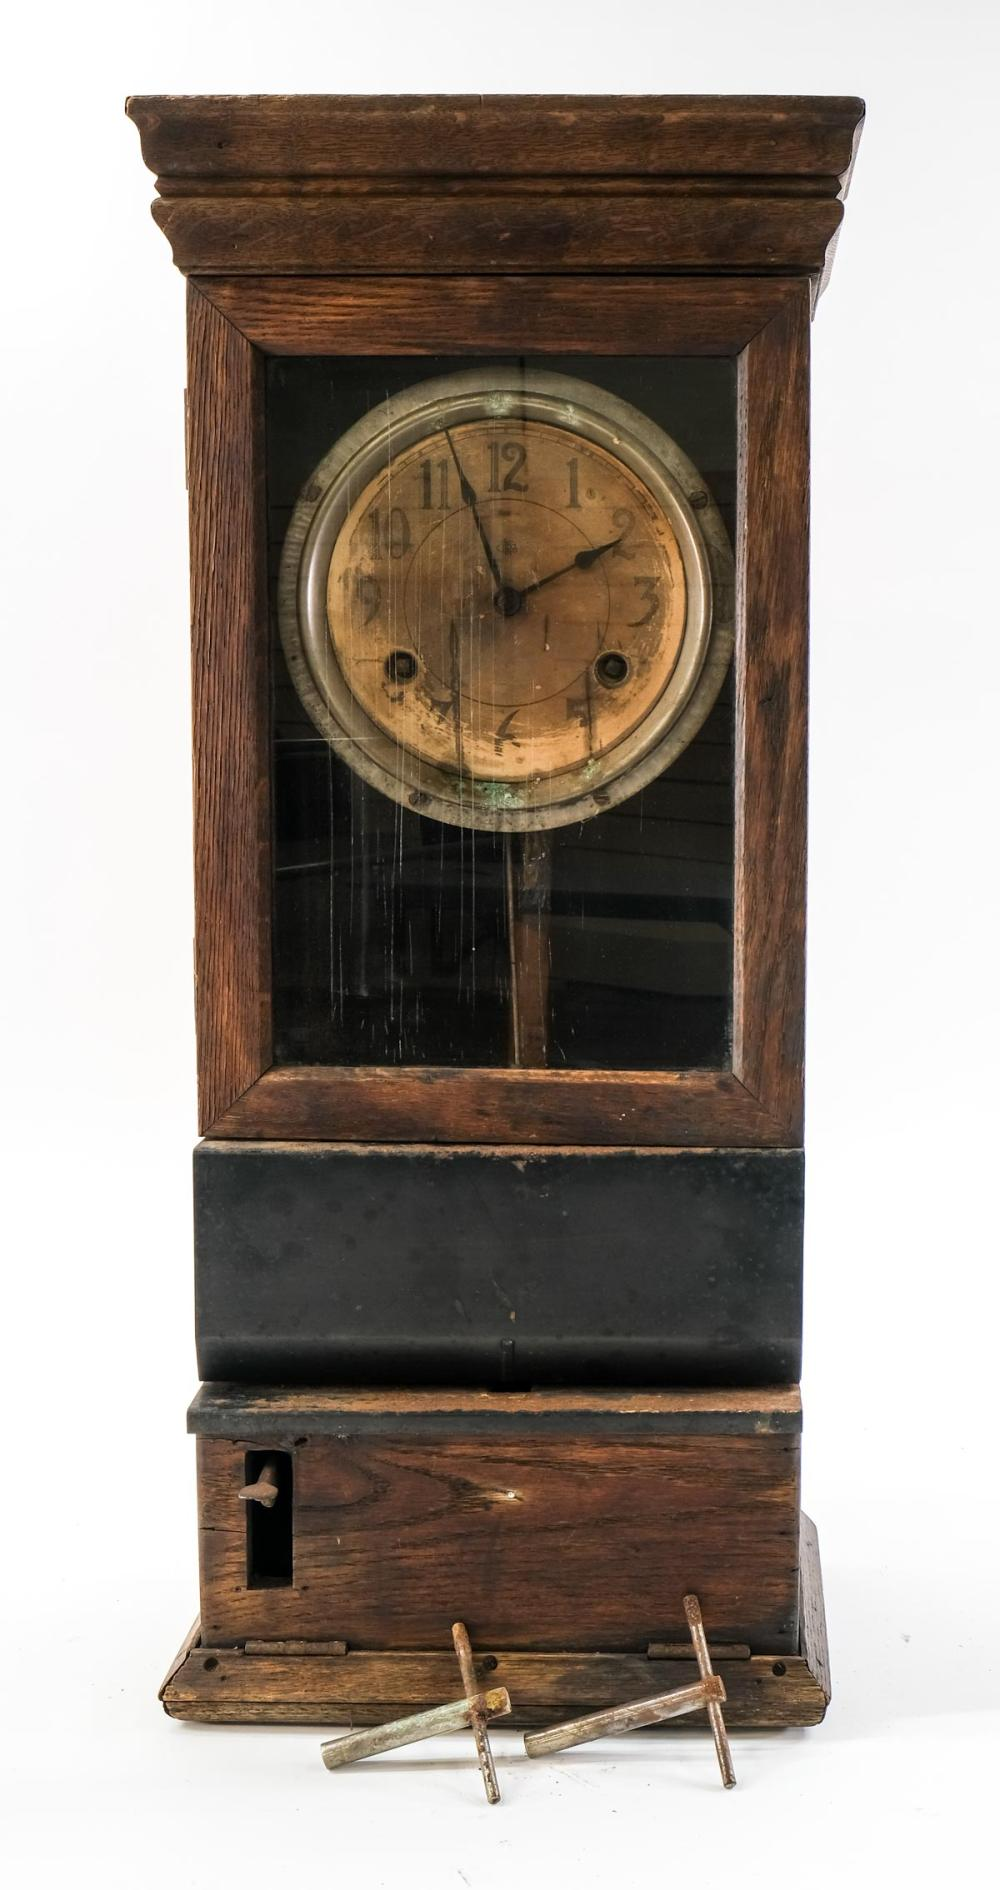 Antique Mechanical Time Clock